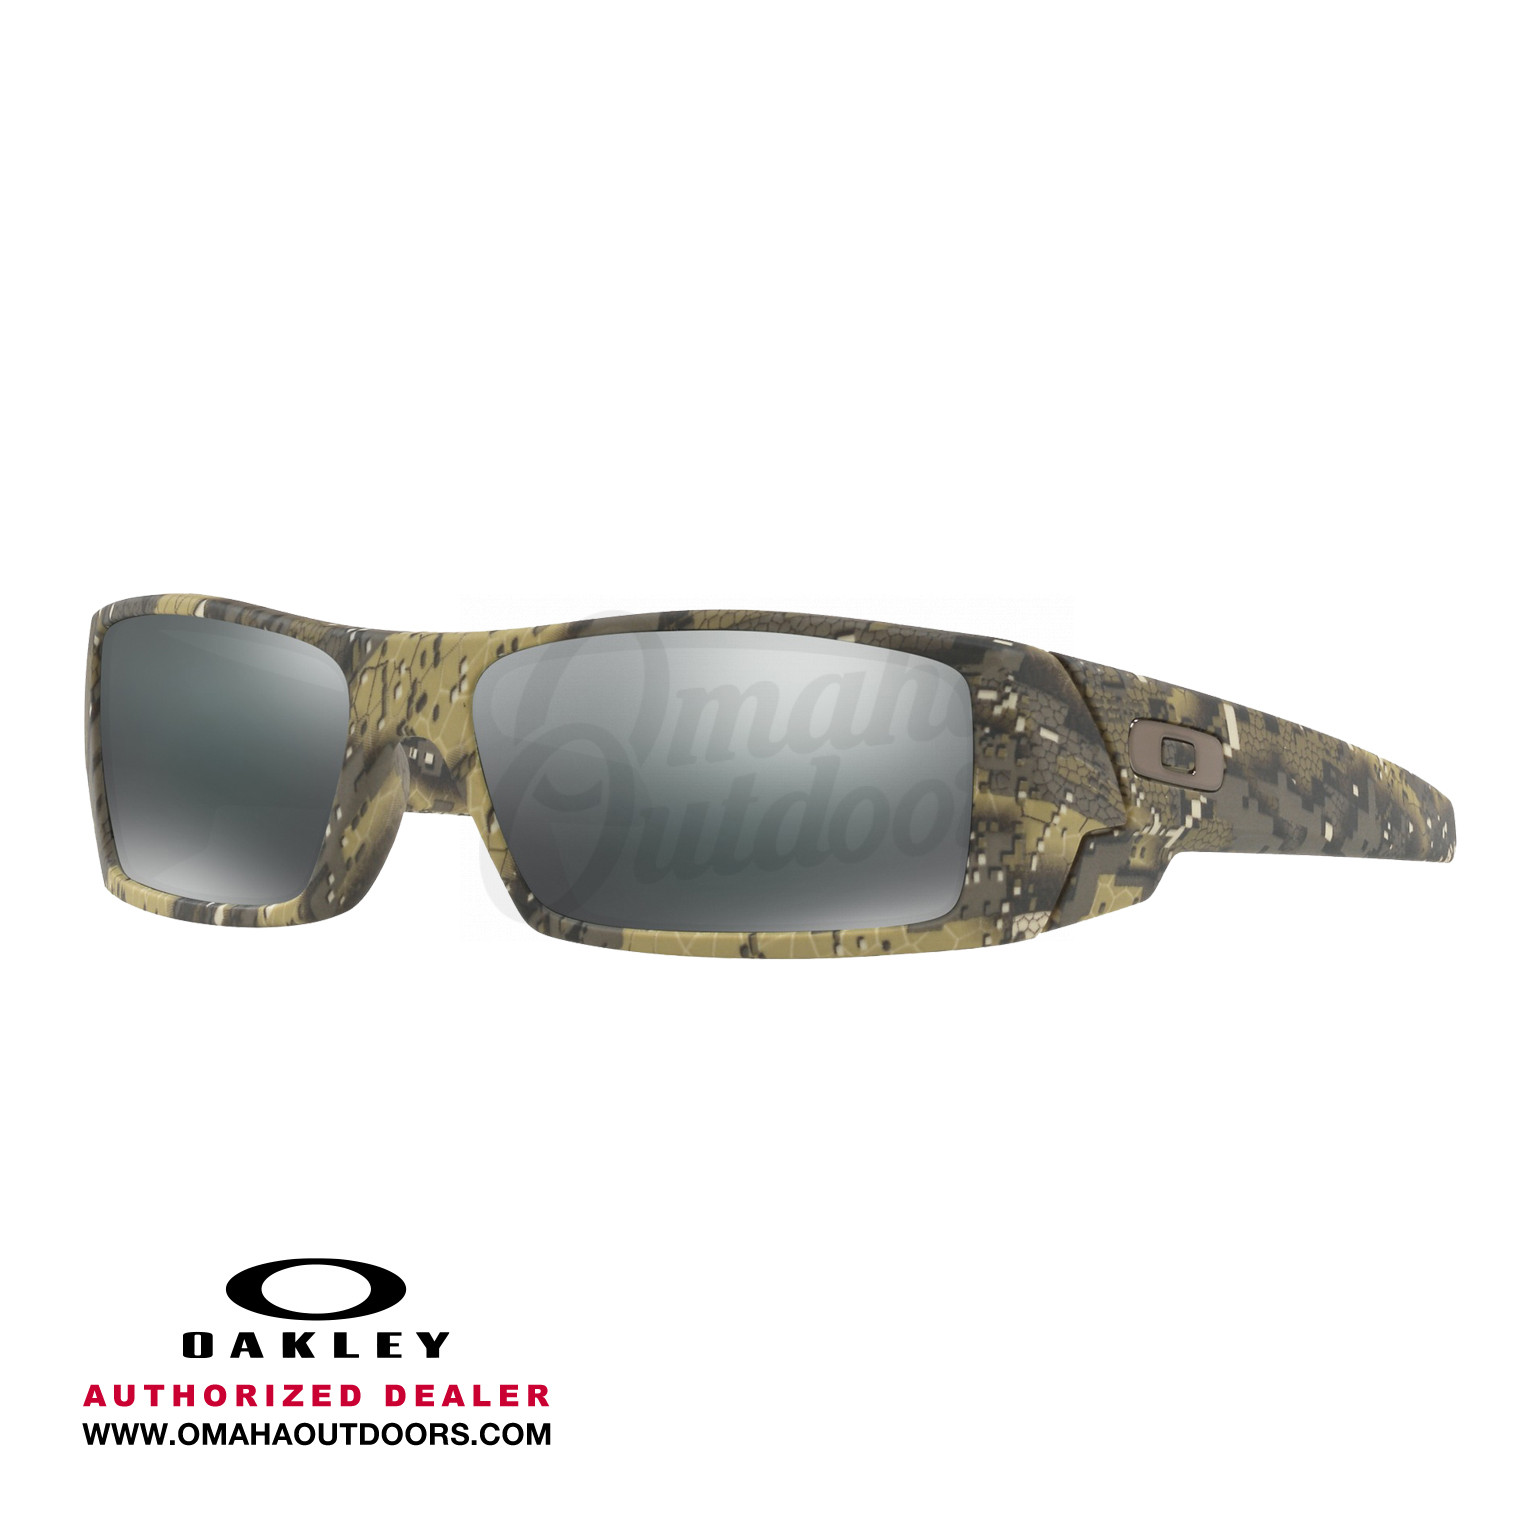 oakley gascan standard issue desolve camo collection sunglasses rh omahaoutdoors com